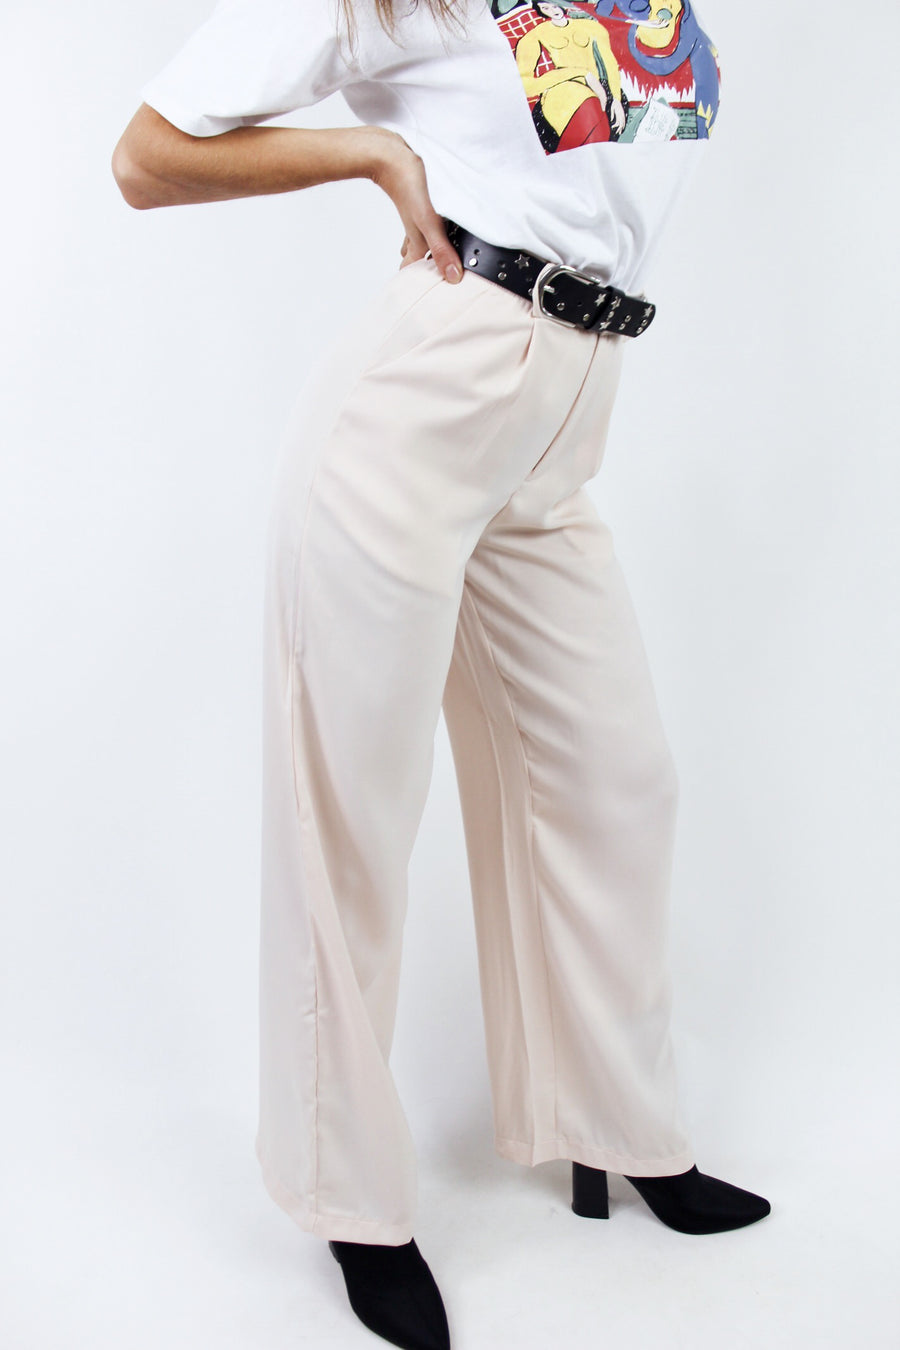 LADY BOSS SILKY TROUSERS / APRICOT - Halite Clothing